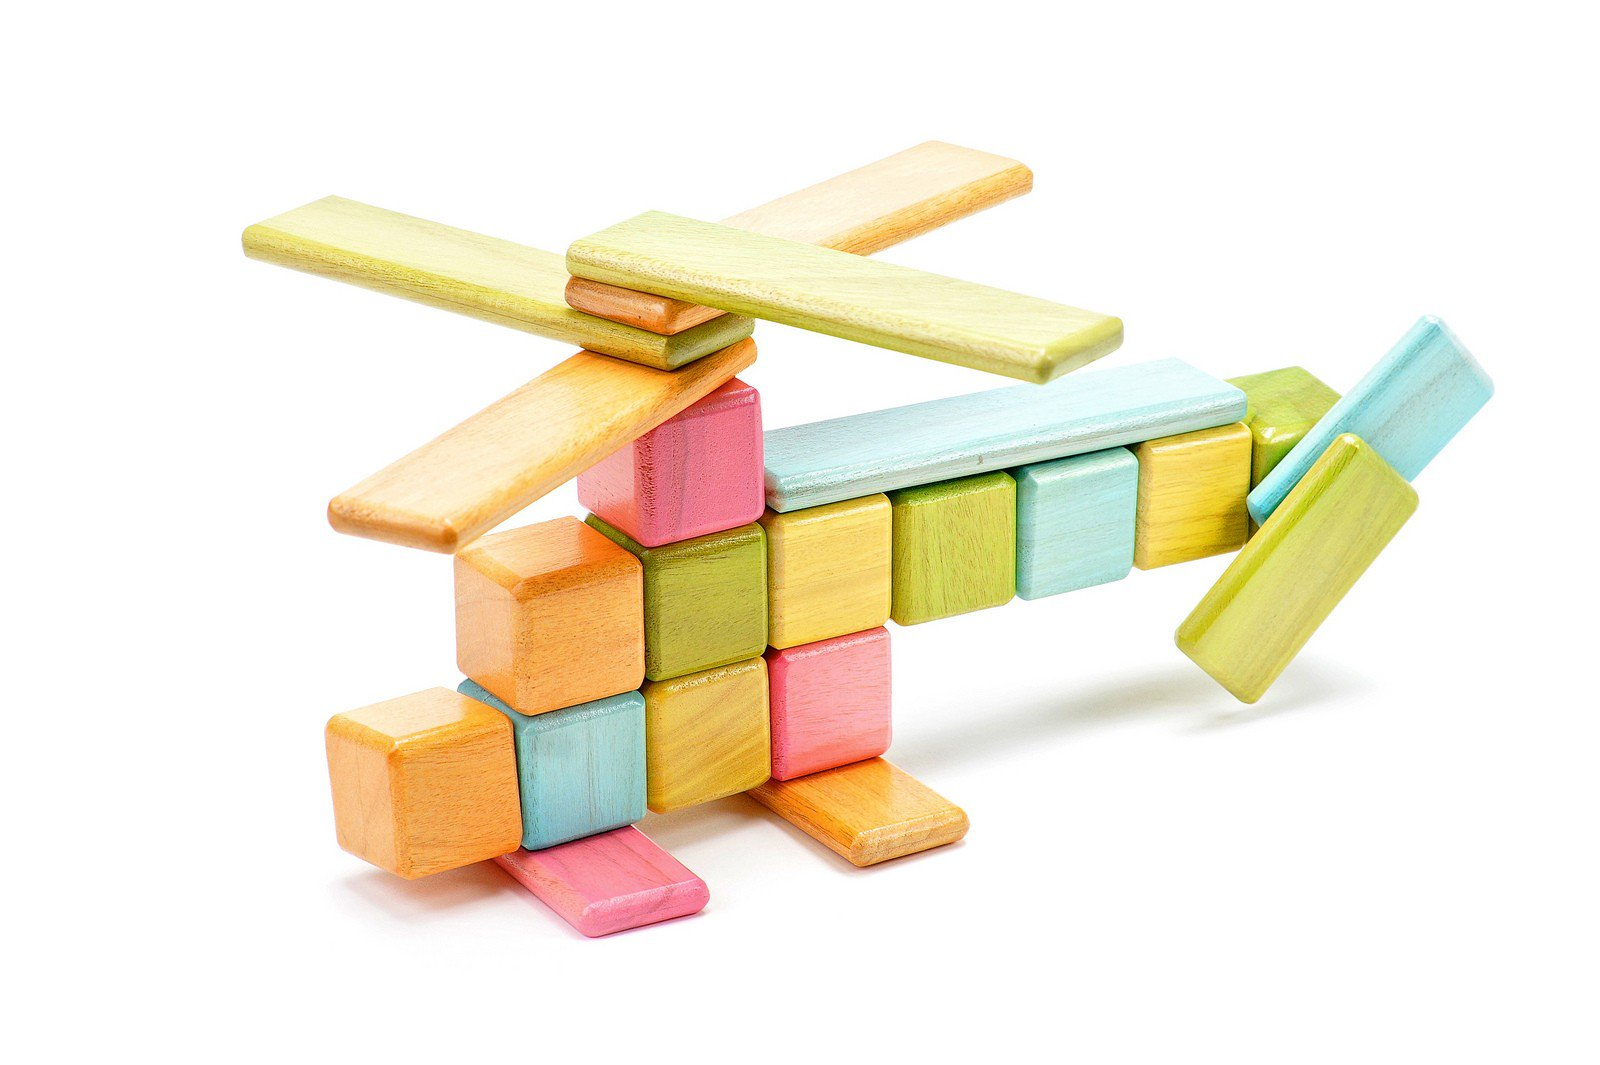 Wooden Desktop Wooden Toys Wallpapers High Quality Download Free